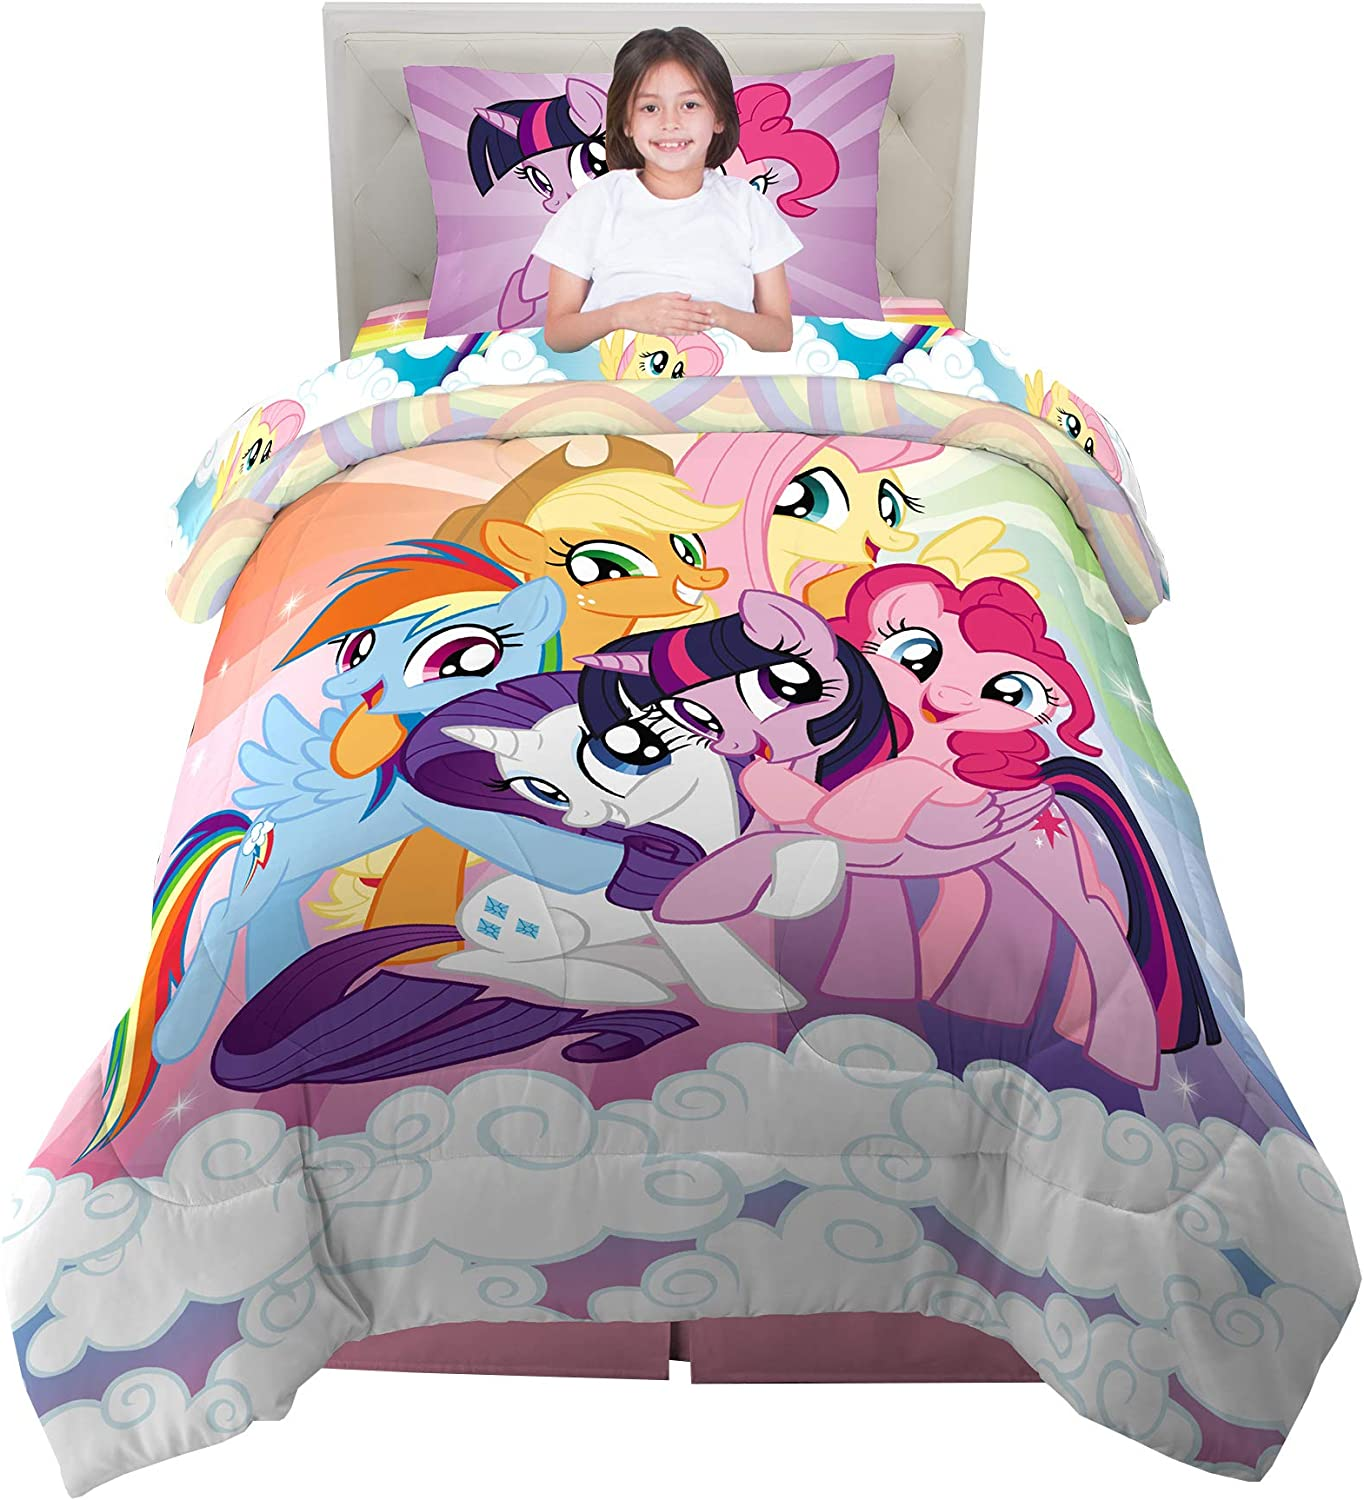 Copriletto My Little Pony.Amazon Com Kitchen Designers Franco Kids Bedding Super Soft Comforter And Sheet Set 4 Piece Twin Size My Little Pony Home Kitchen